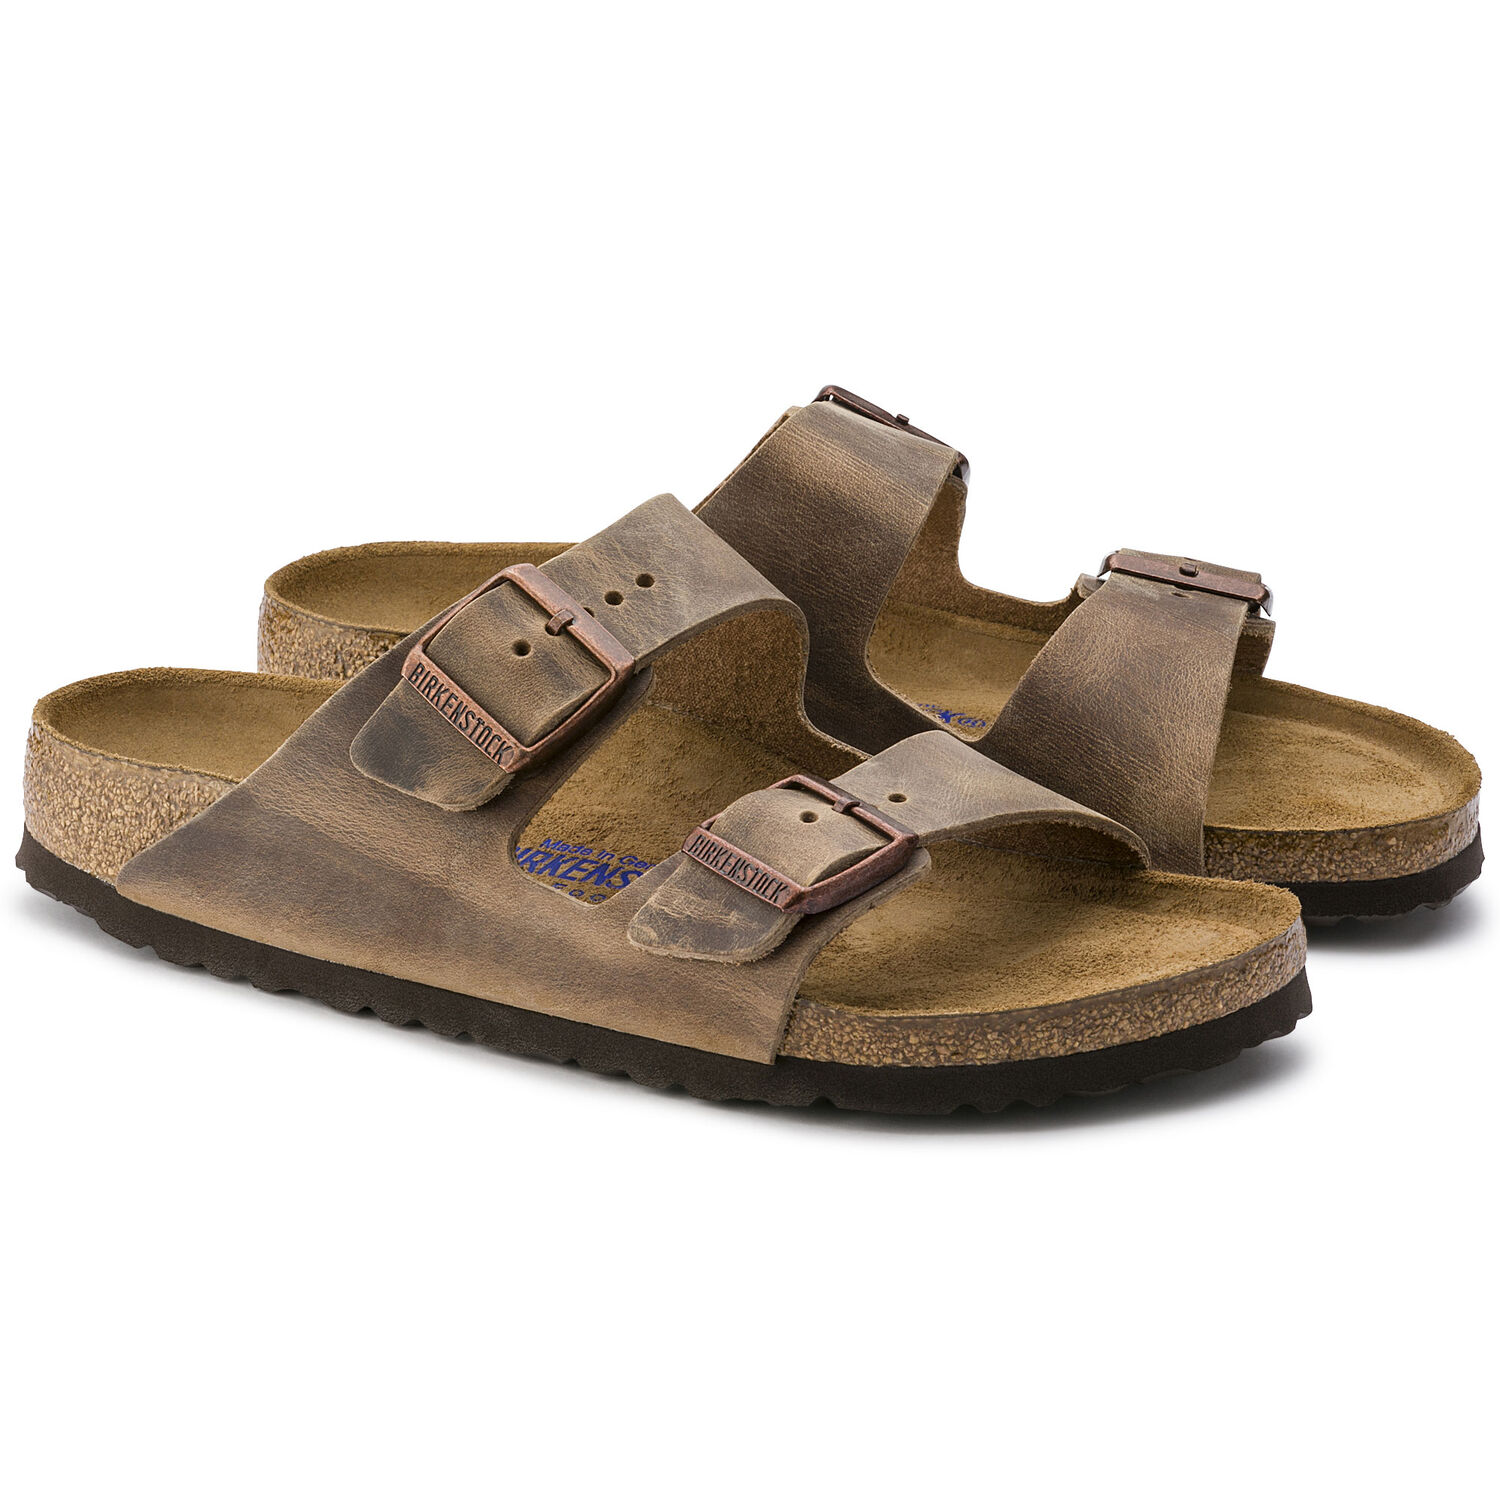 Arizona Soft Footbed Oil Leather Sandal (Buy 2 Get 10% OFF & Free Shipping)